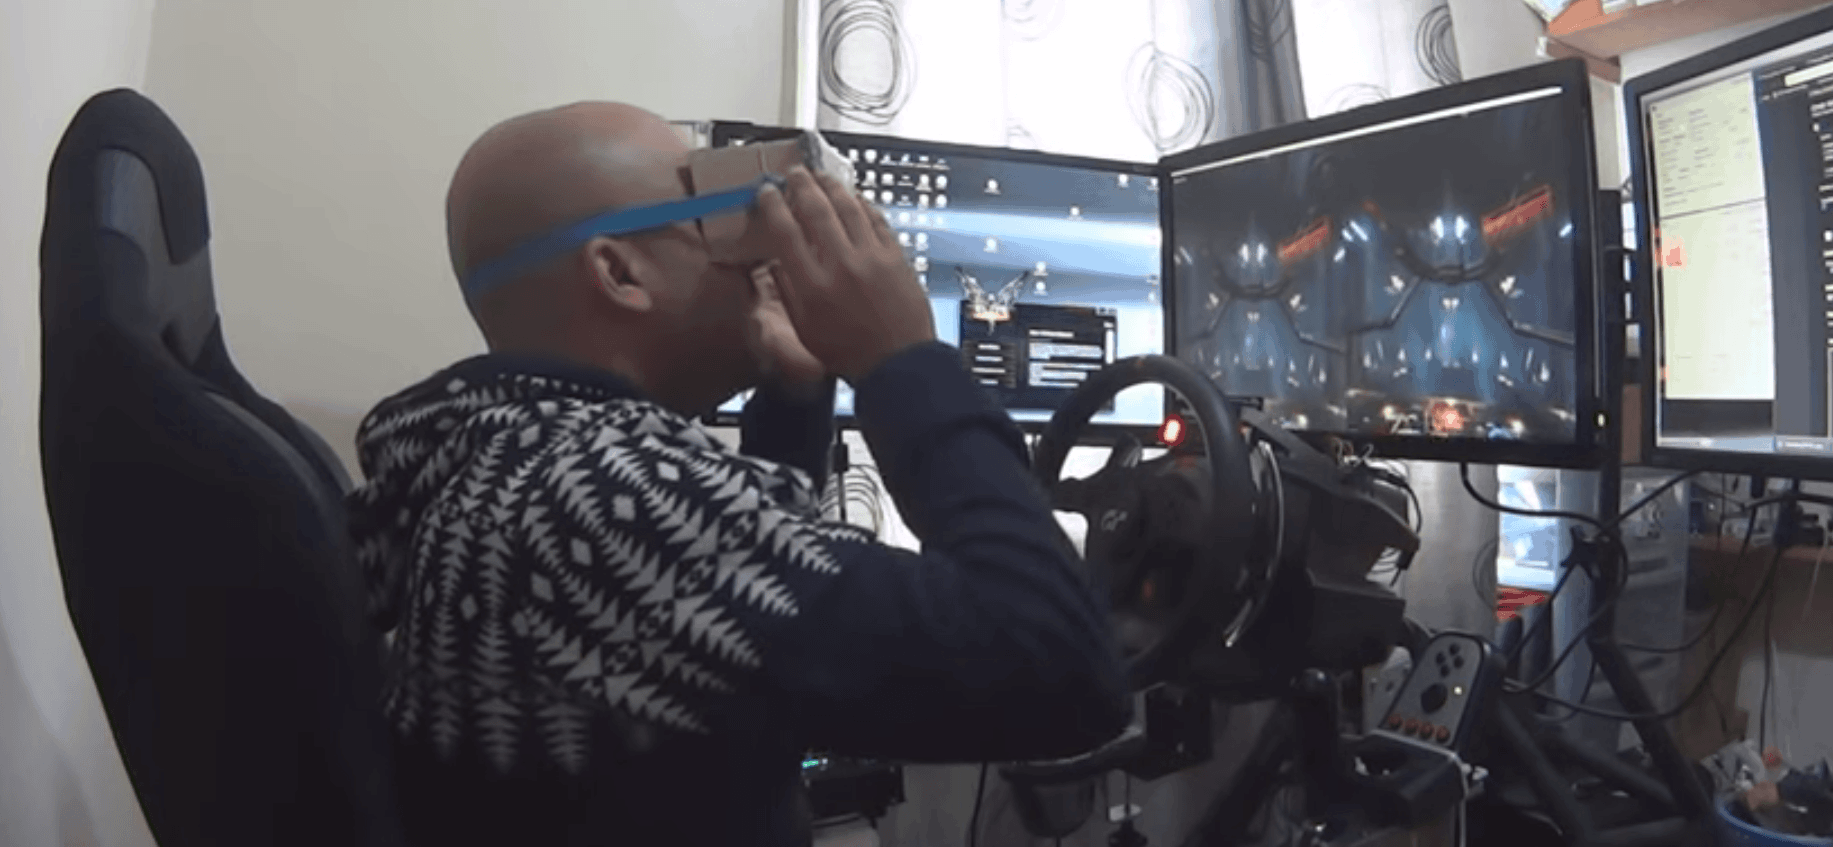 Elite Dangerous with Google Cardboard: DIY Oculus RIFT :)